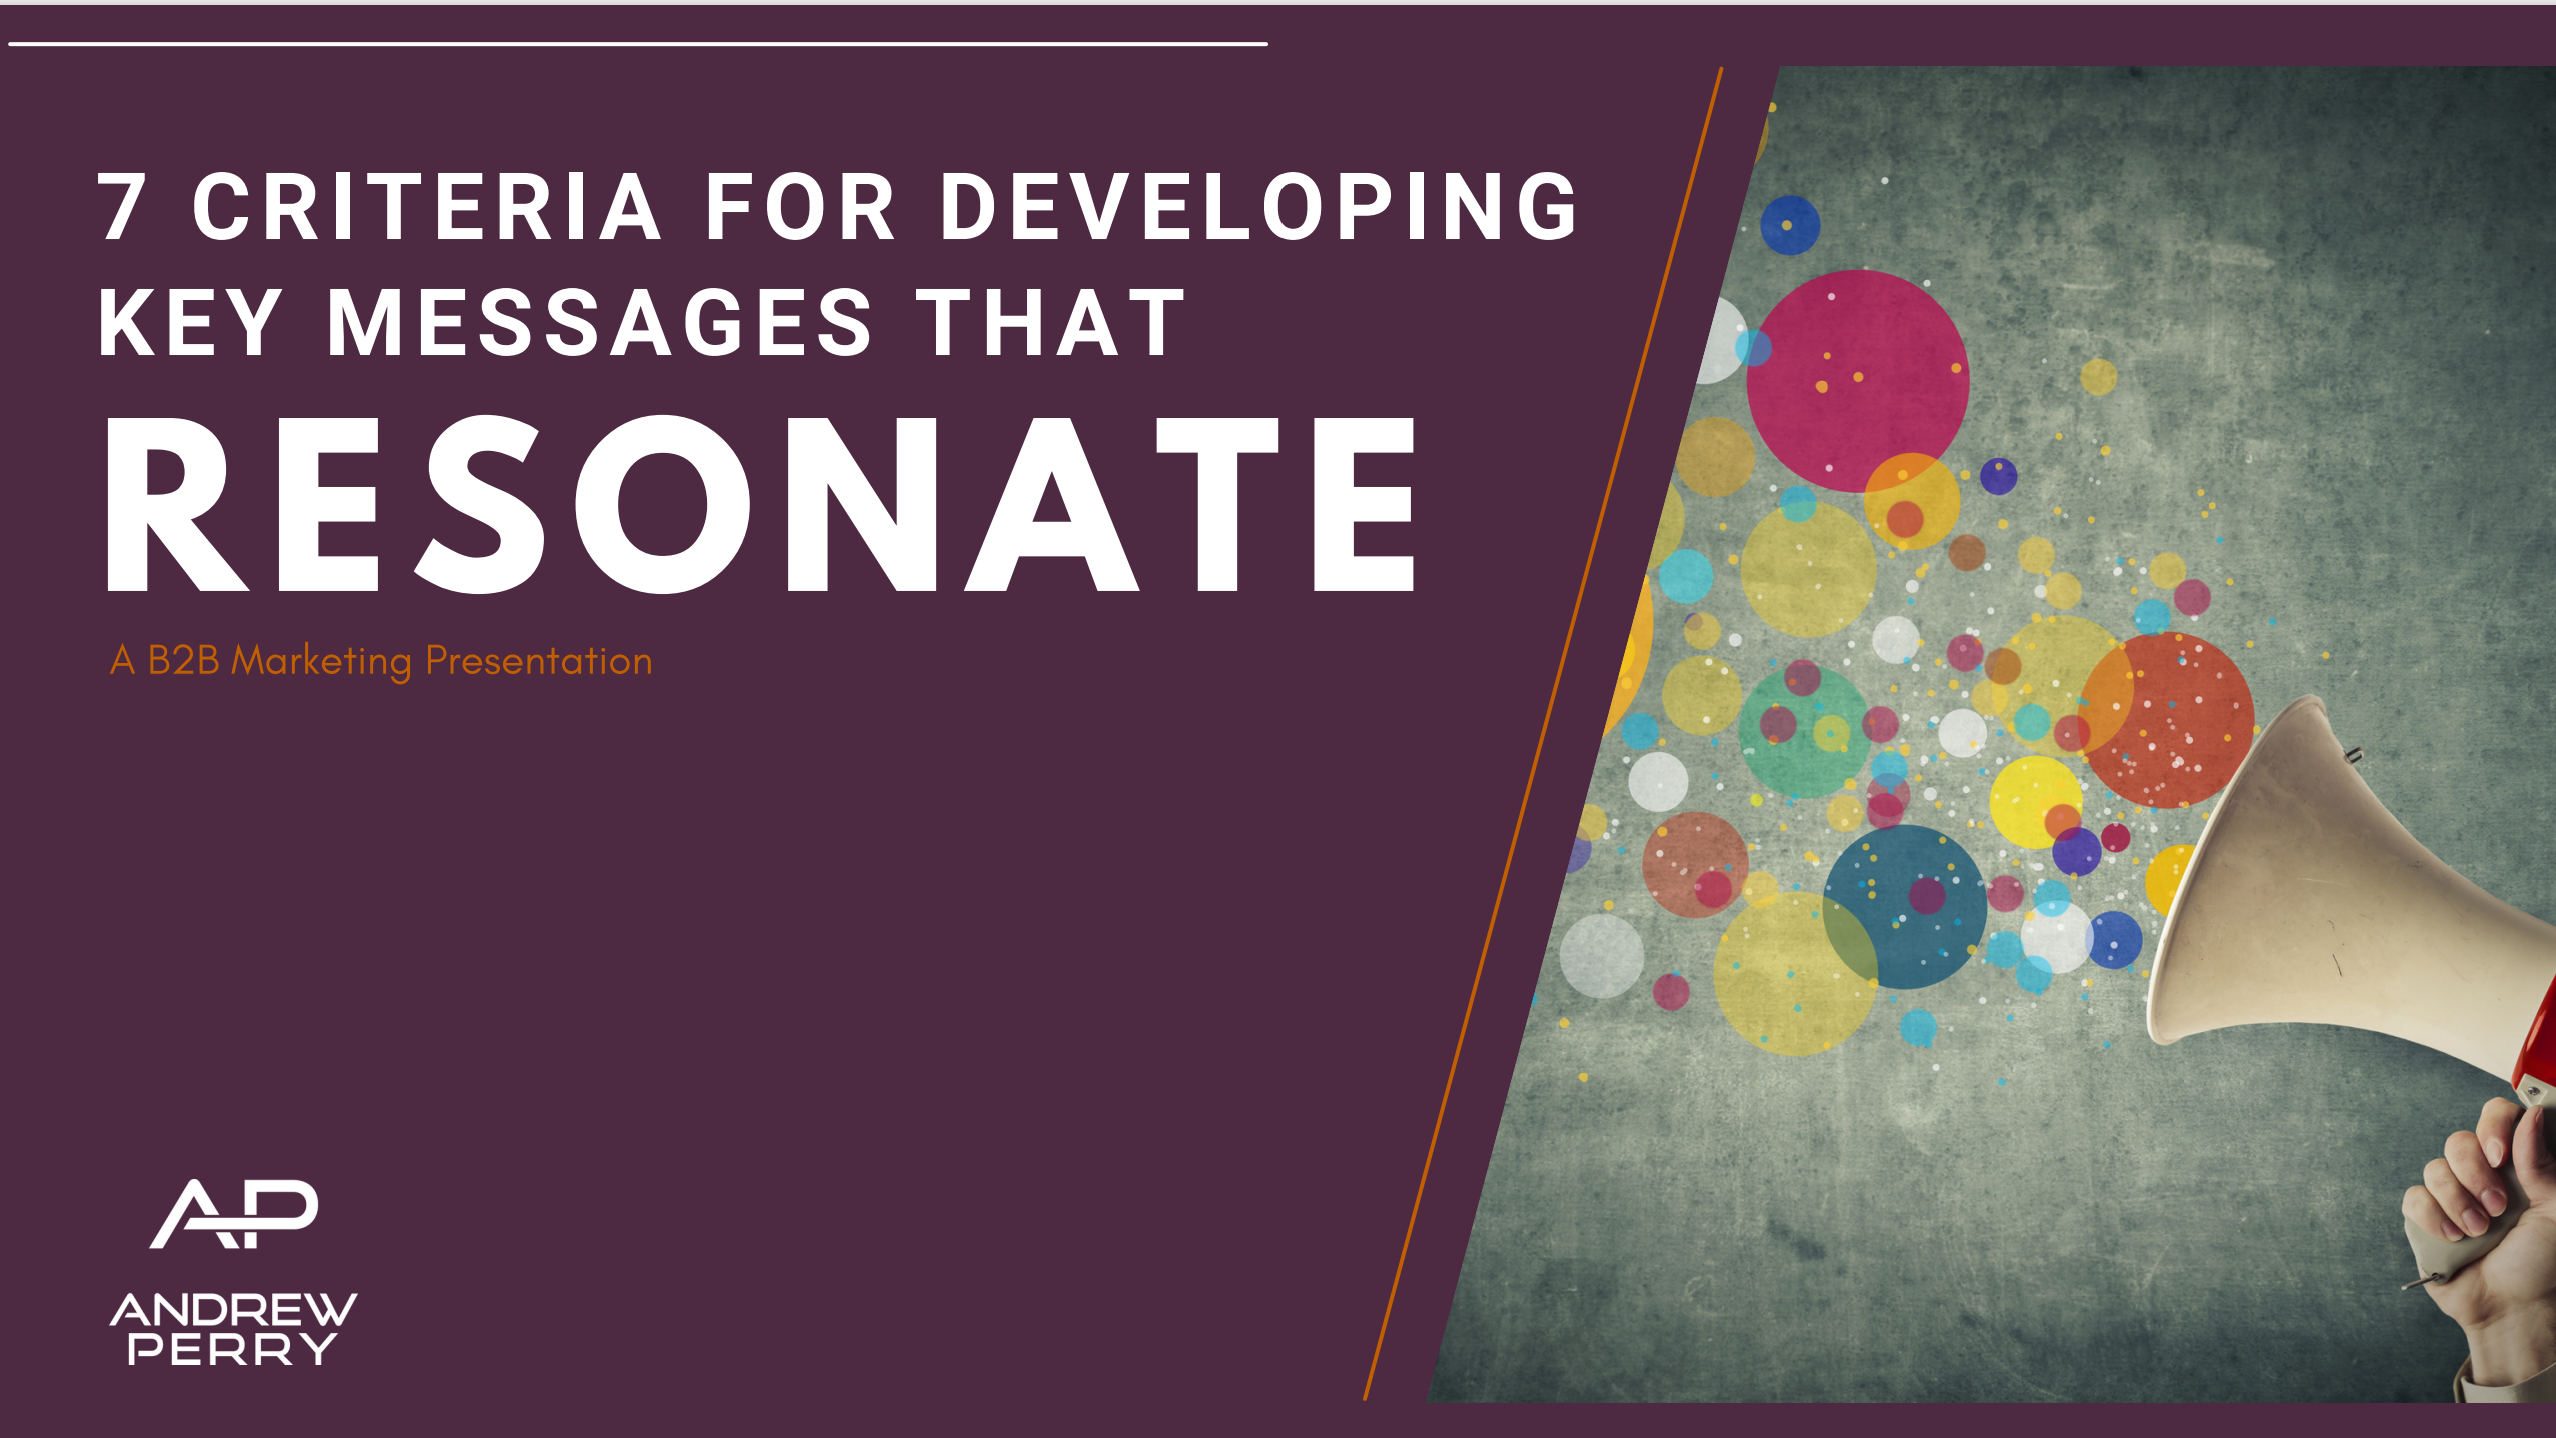 7 Criteria for Developing Key Messages that Resonate